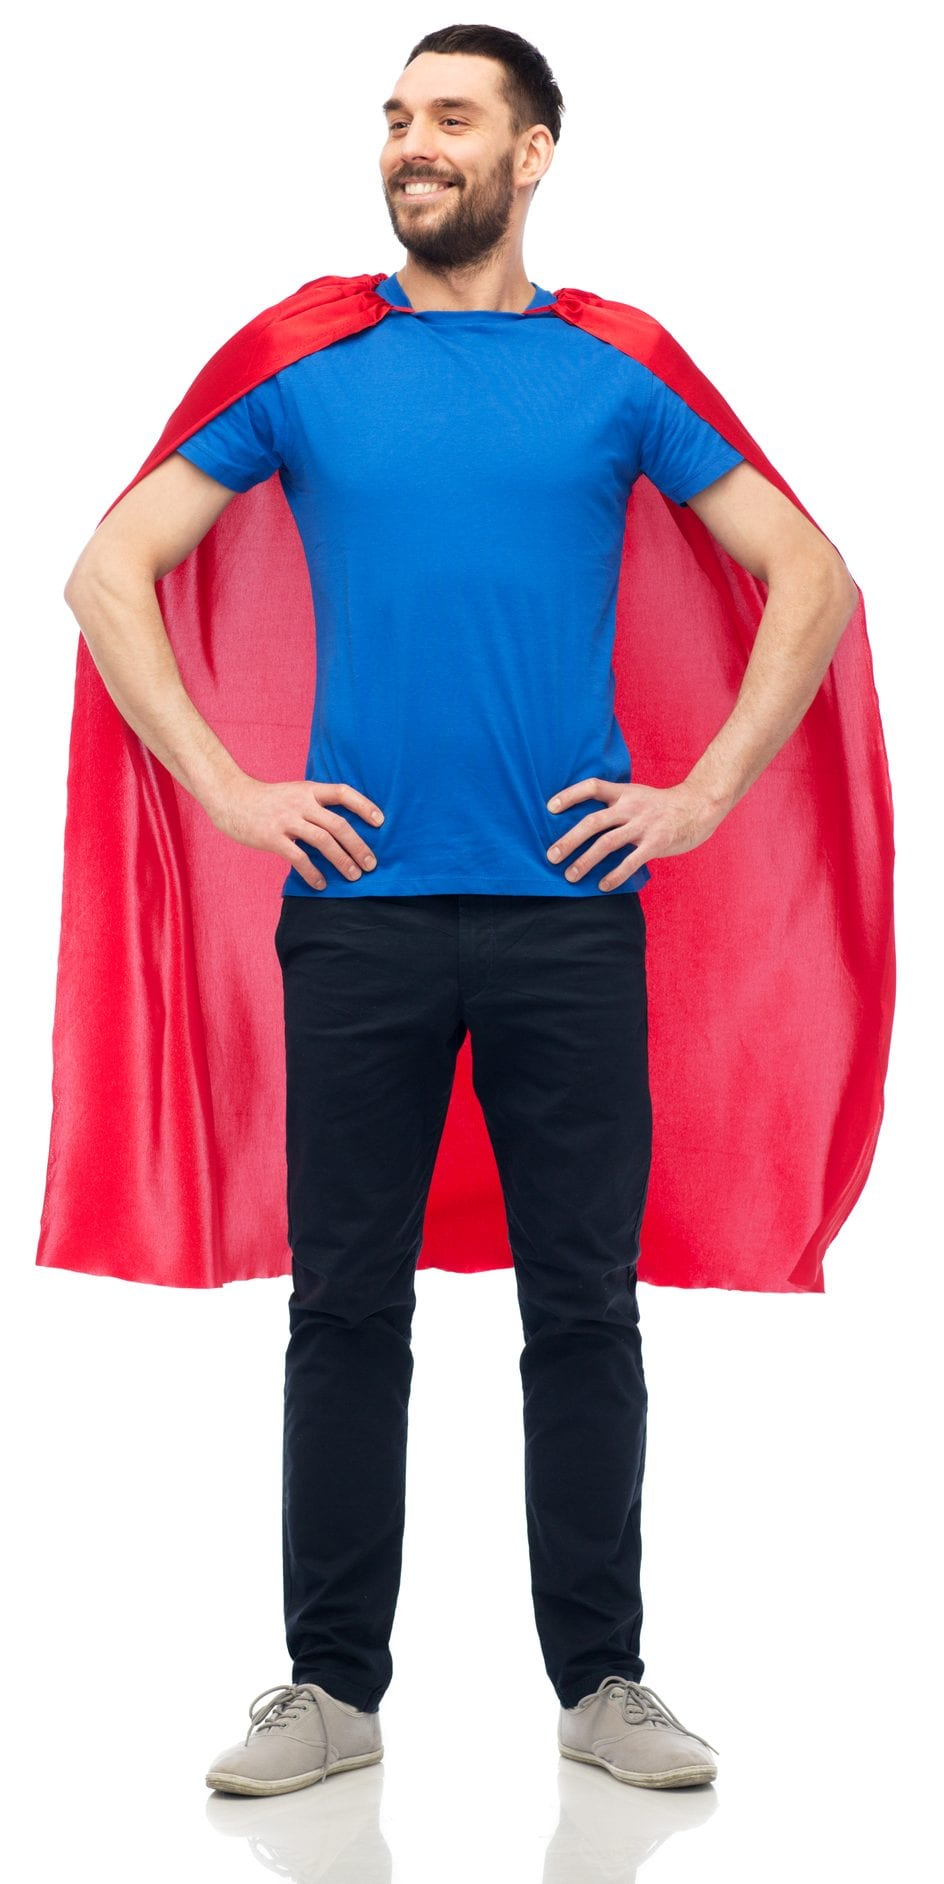 power and people concept - happy man in red superhero cape over white